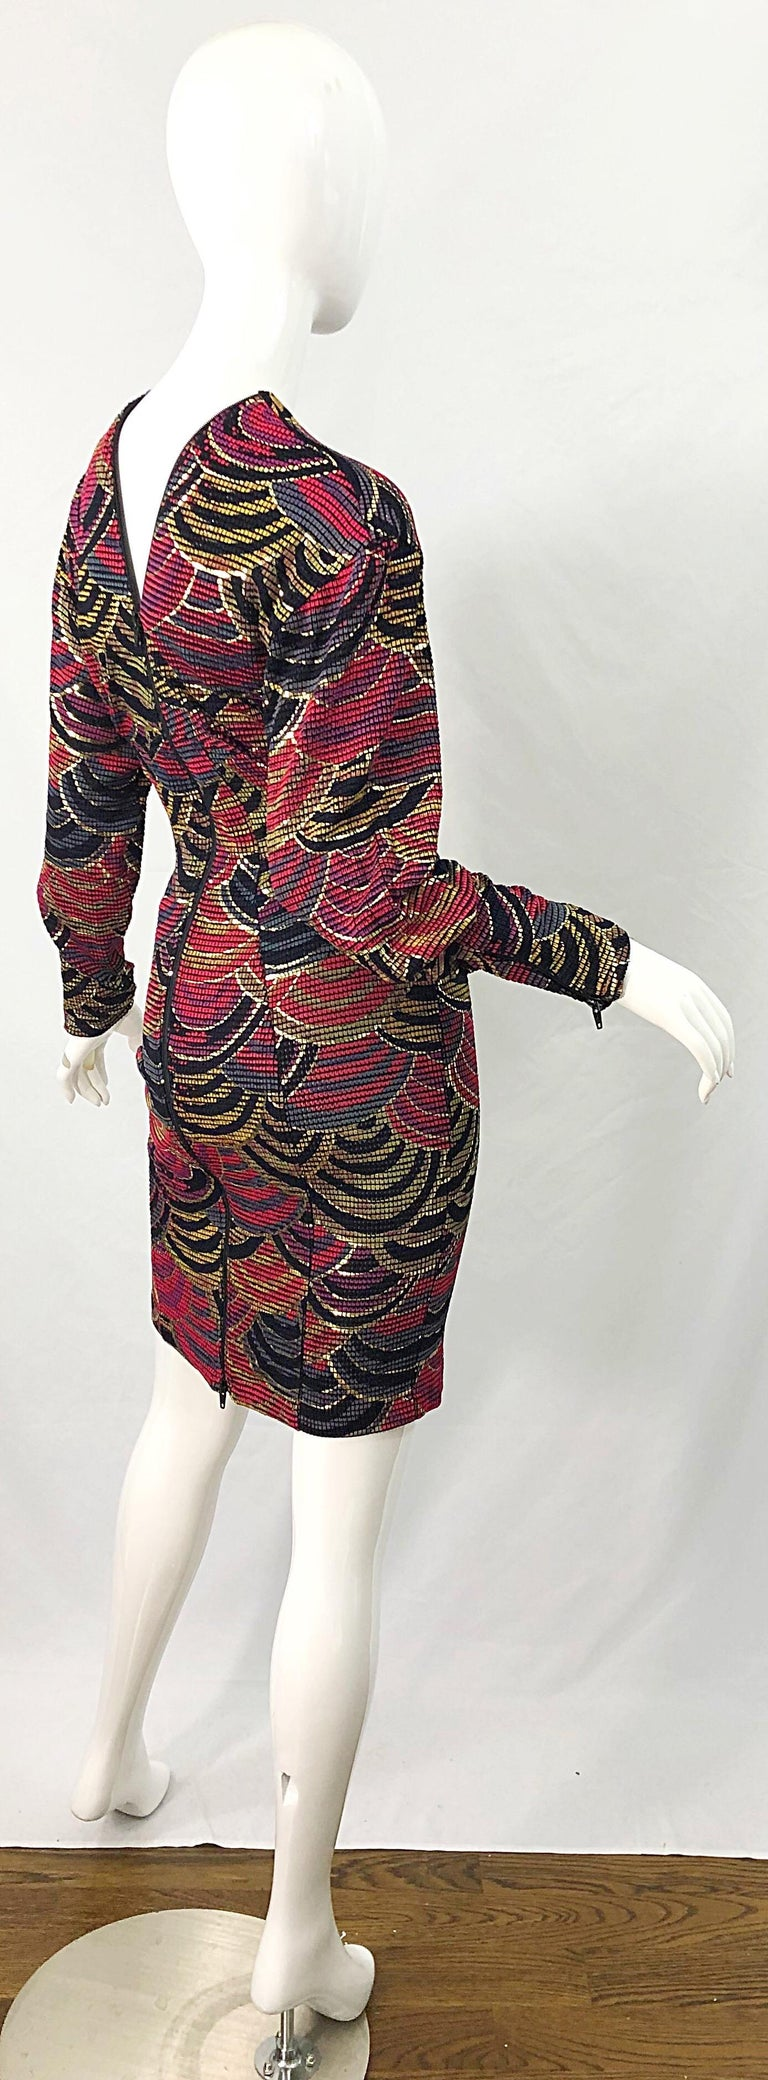 1980s Hand Painted Reversible Red + Gold + Green Vintage 80s Avant Garde Dress For Sale 12